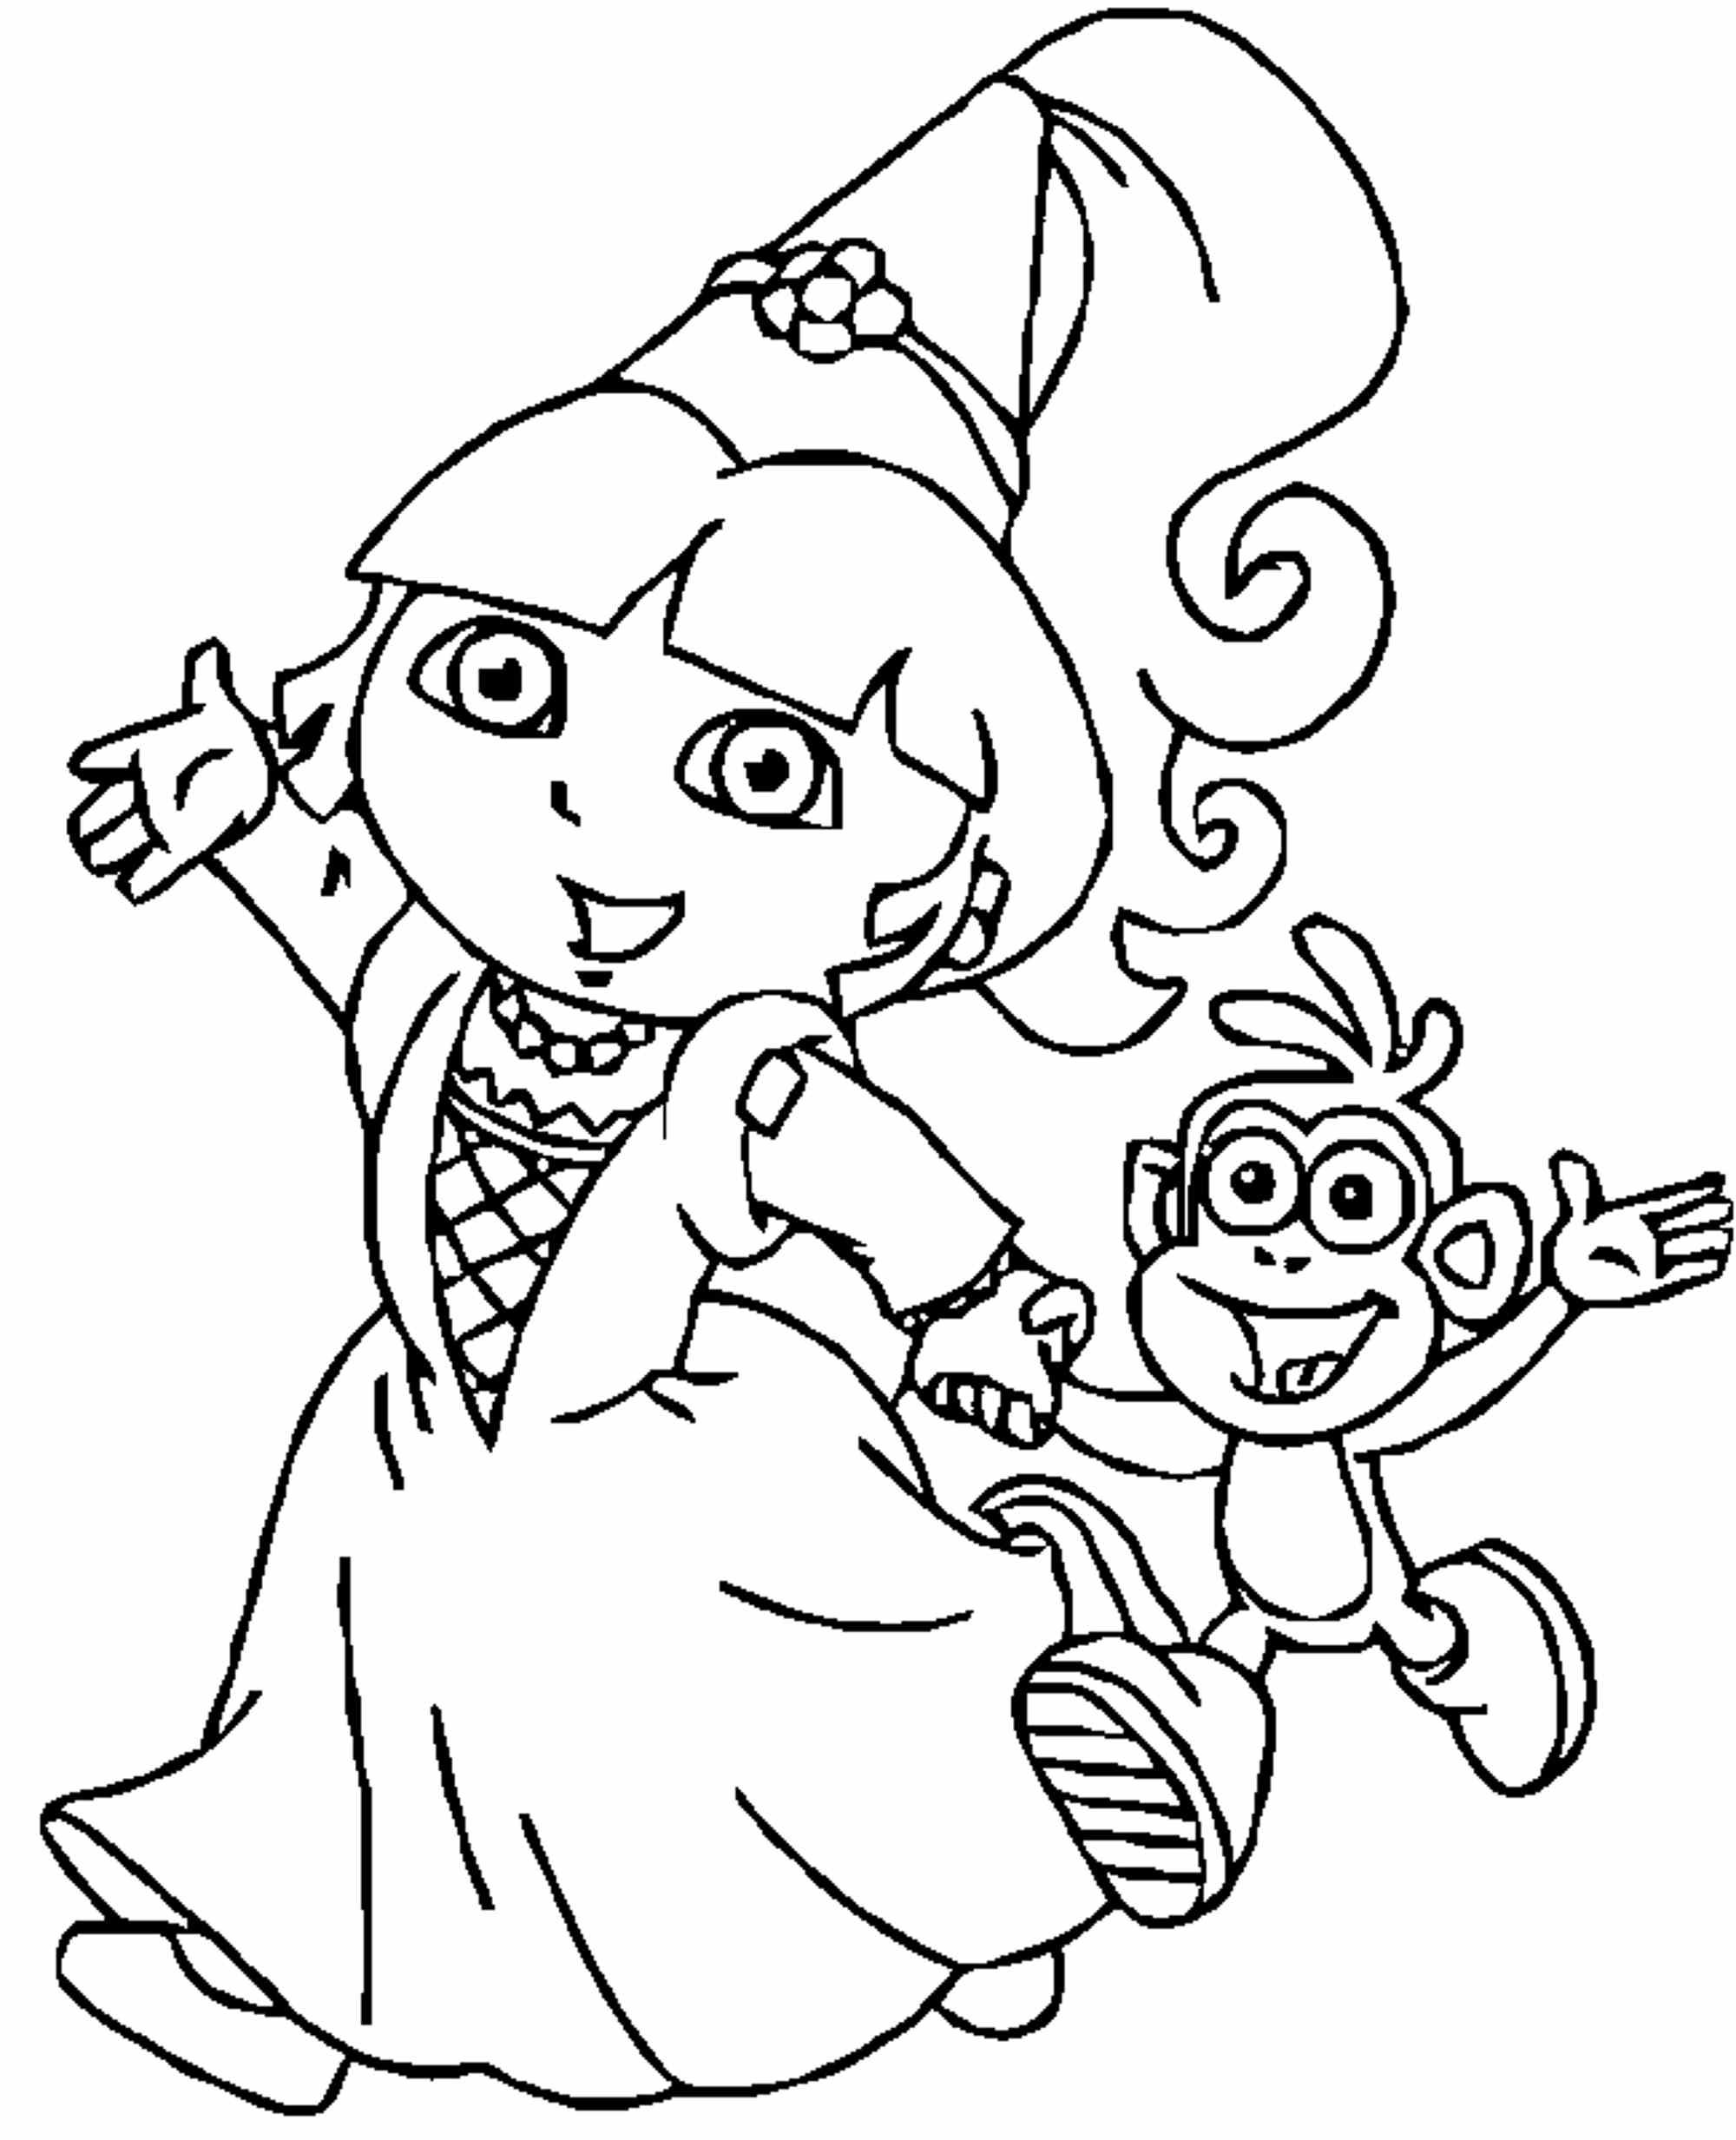 dora the explorer images to print print download dora coloring pages to learn new things the dora images explorer print to